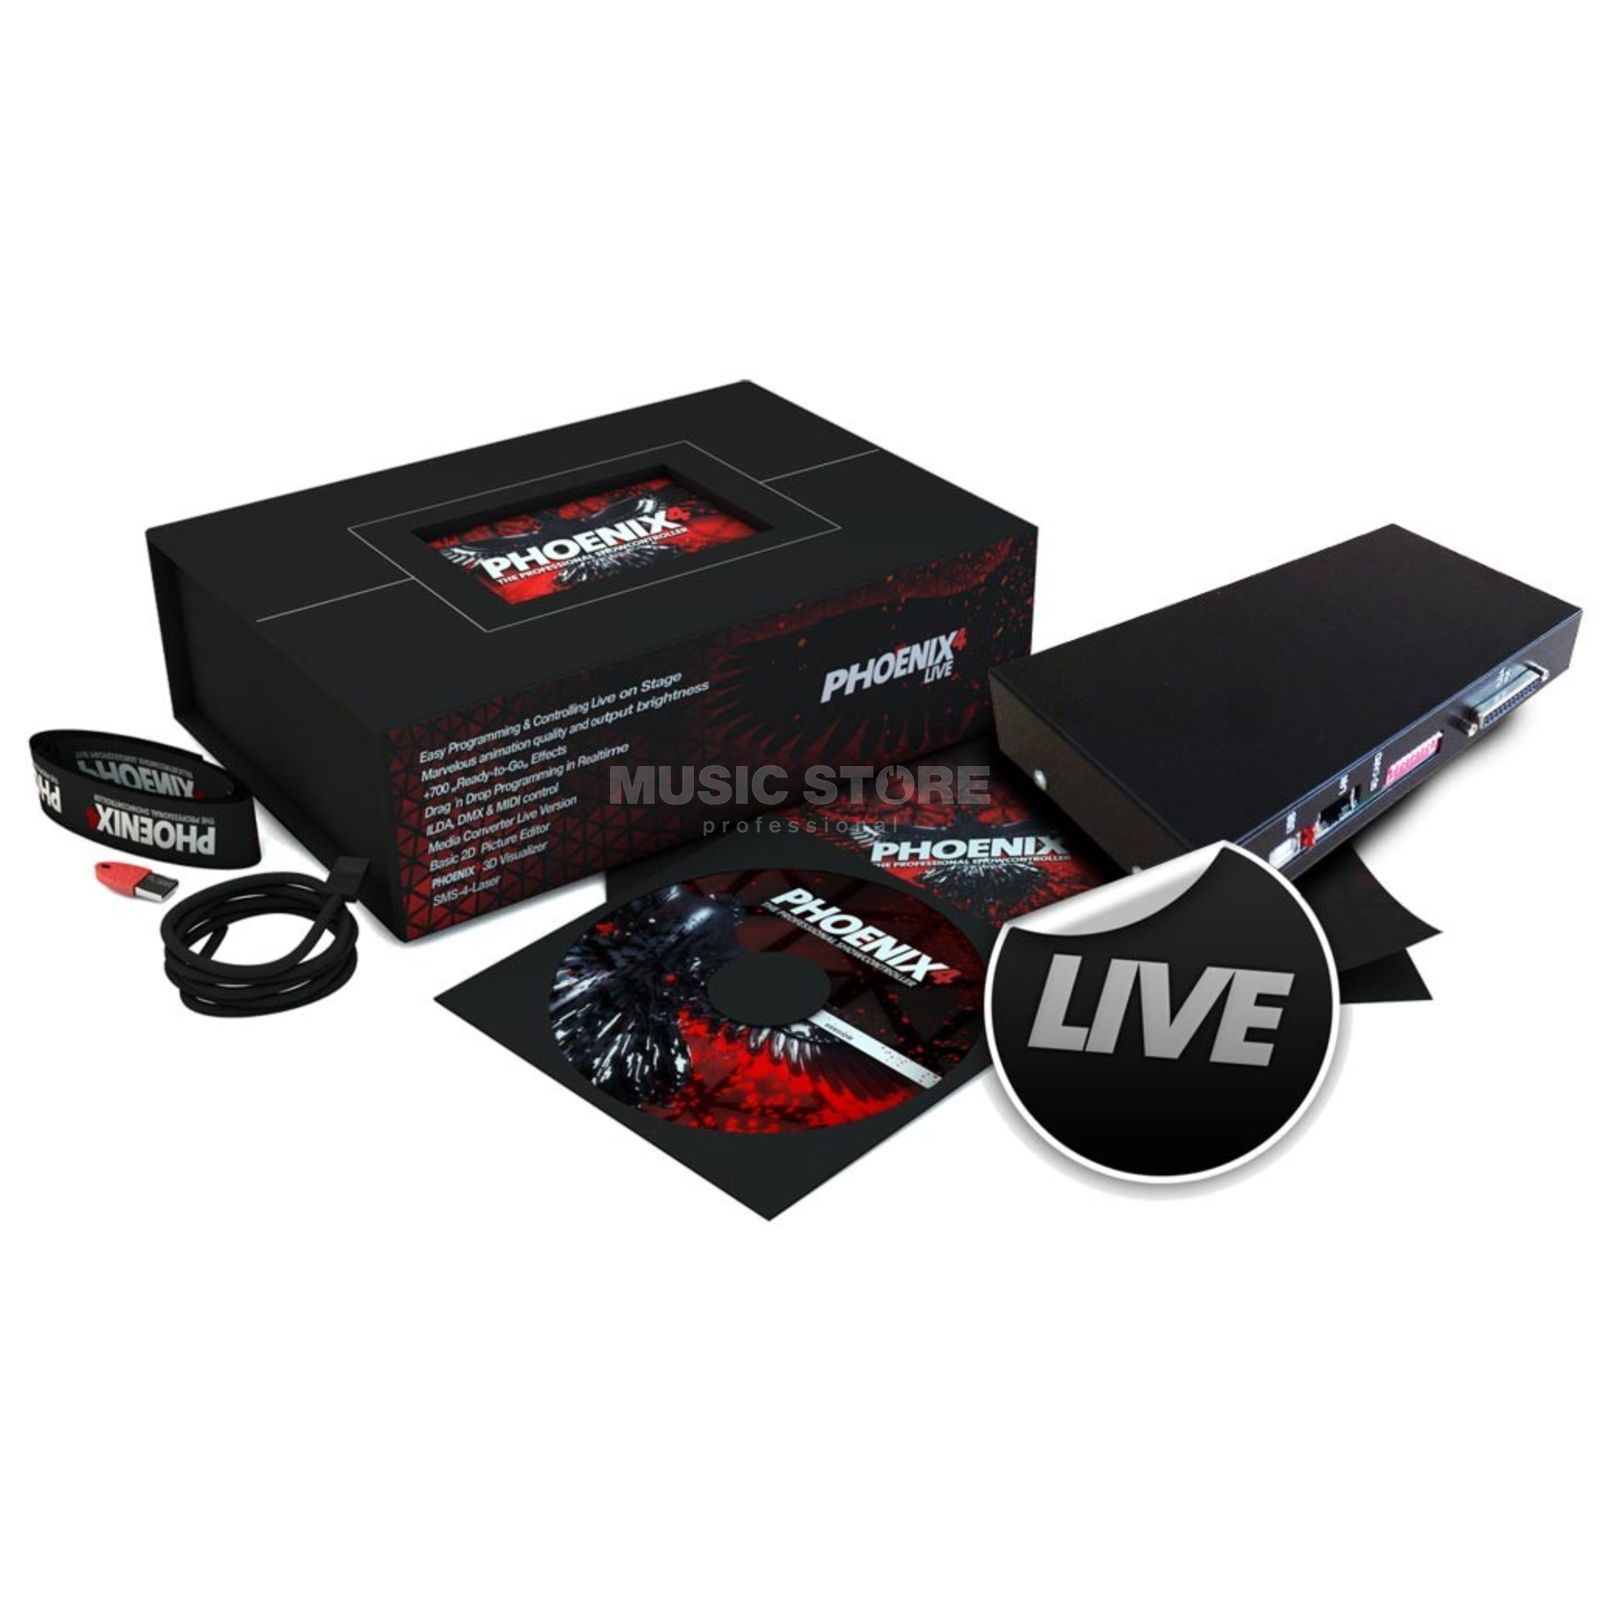 PHOENIX LIVE SET (inkl Micro-Net Slim) Lasersoftware / Interface Product Image